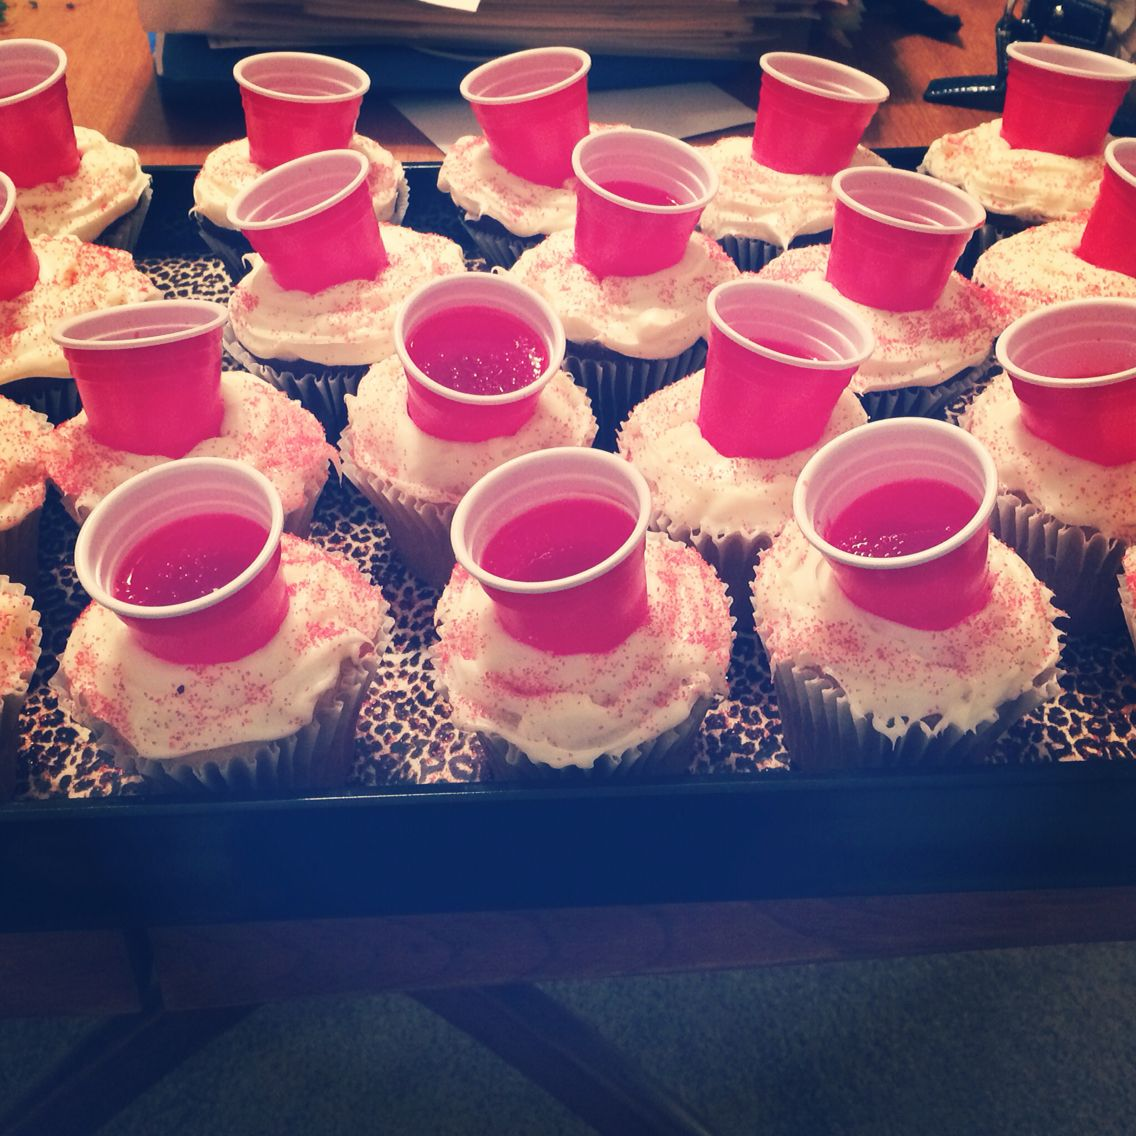 Cupcakes  made for my sisters st birthday large that cut out small hole to stick the mini solo cup found at walmart in were filled also rh pinterest